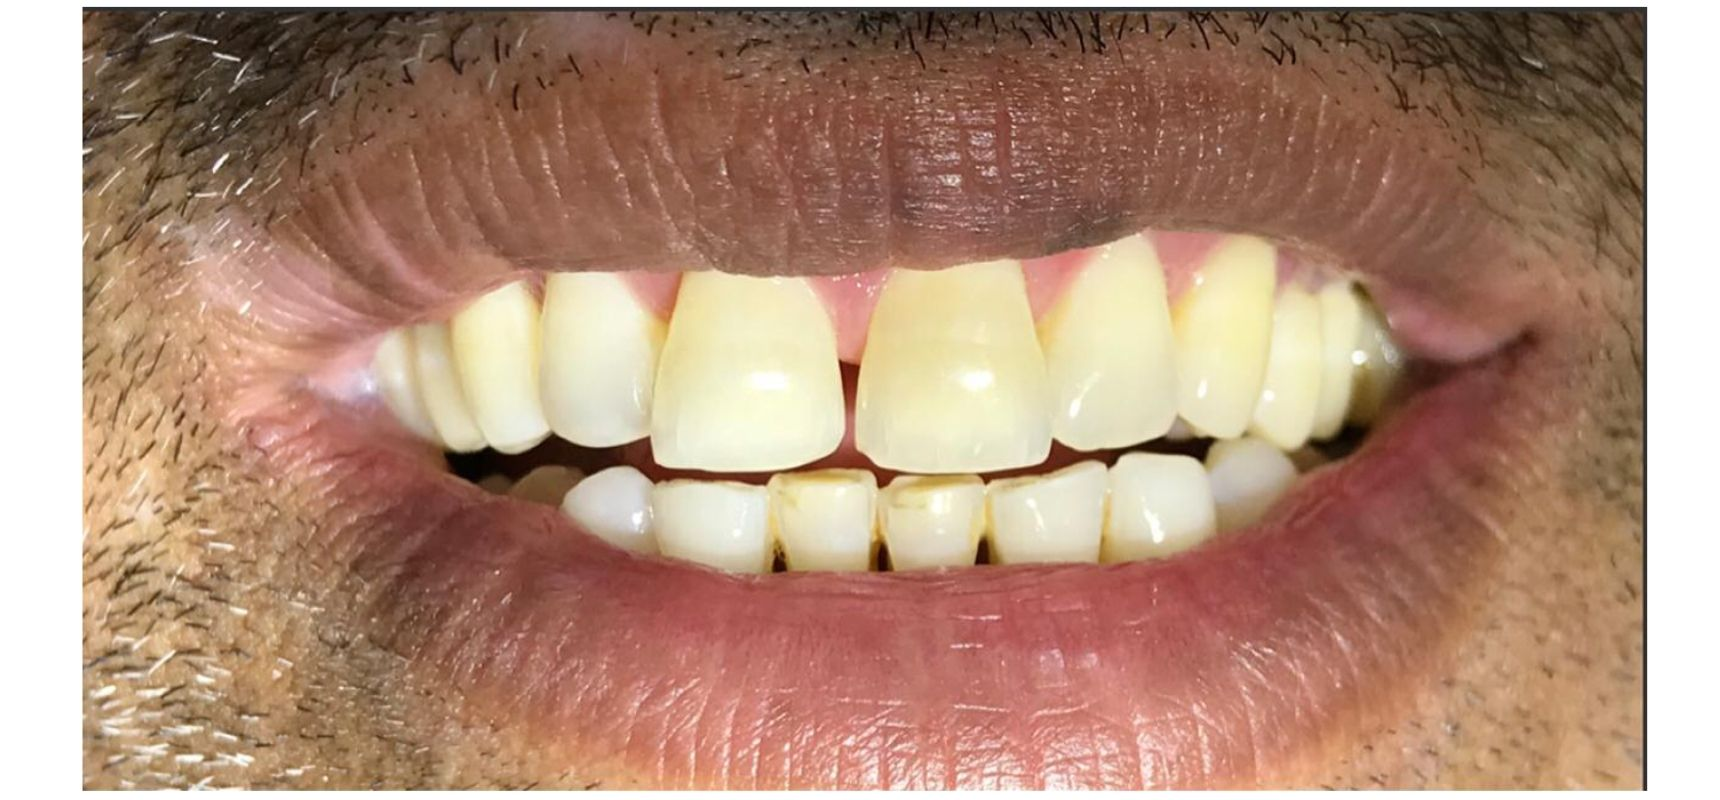 Before-Composite filling to close midline diastema and teeth length adjustment